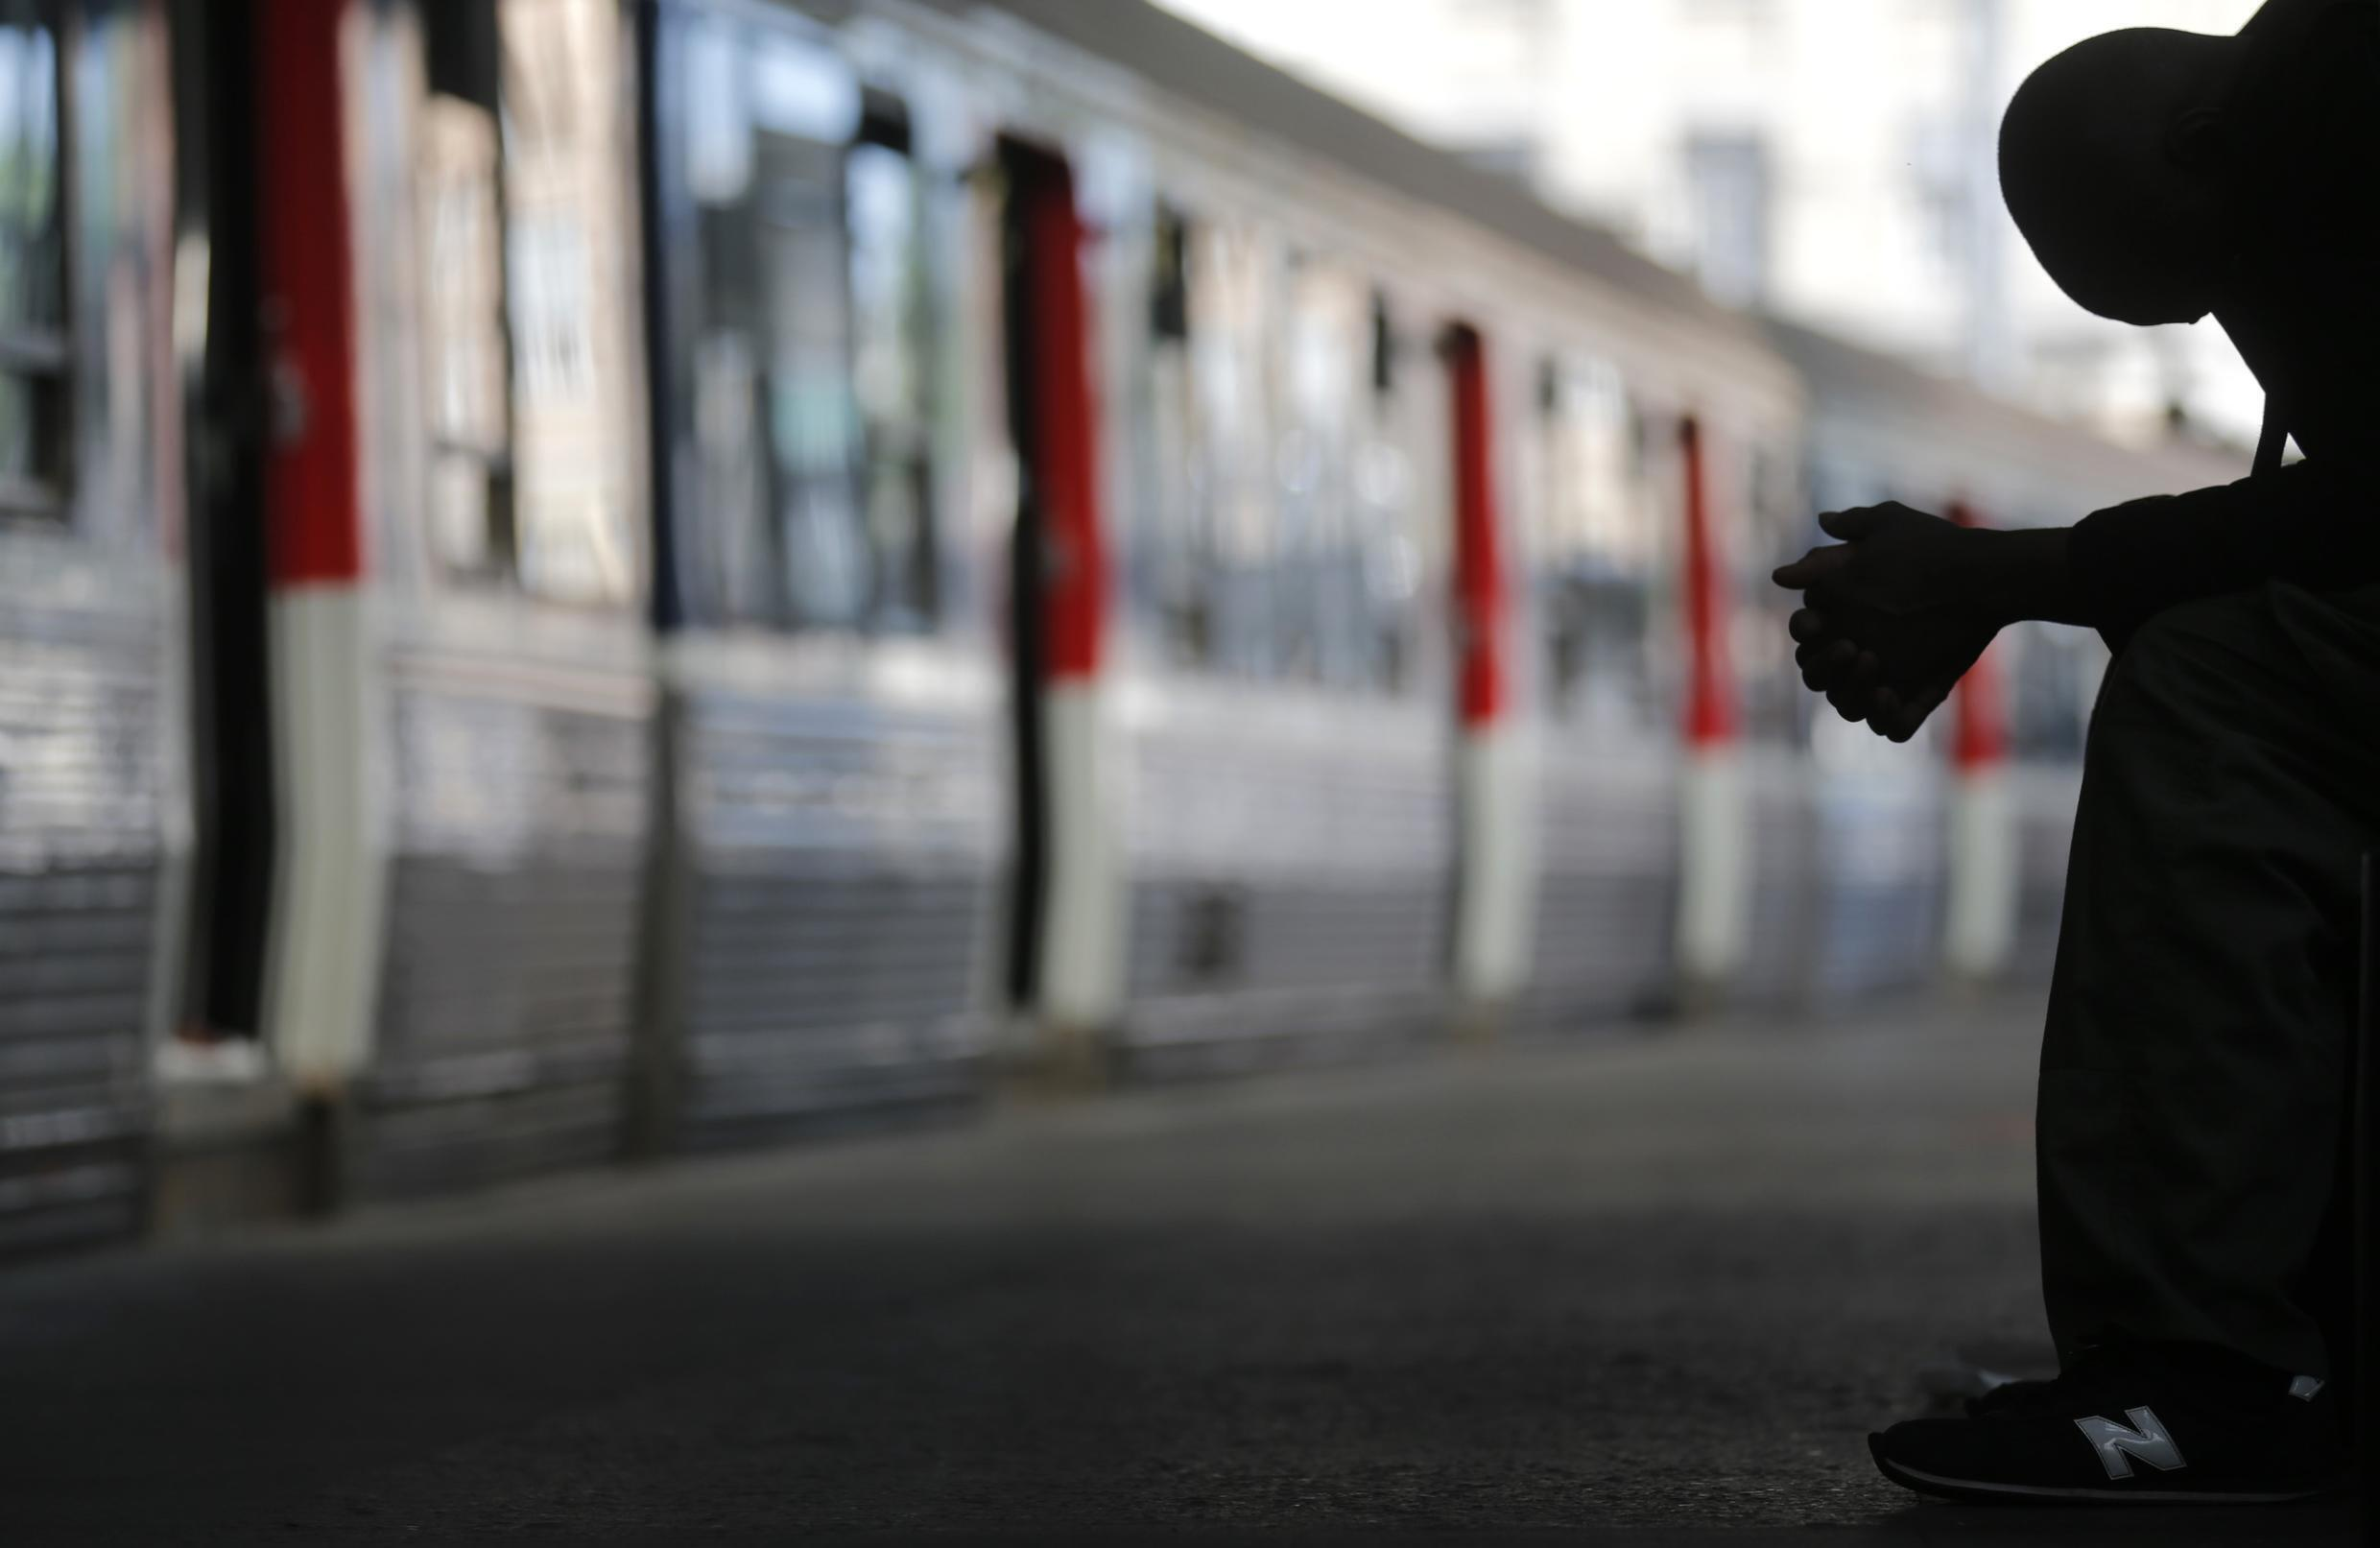 A commuter at Paris's Saint Lazare station on Wednesday